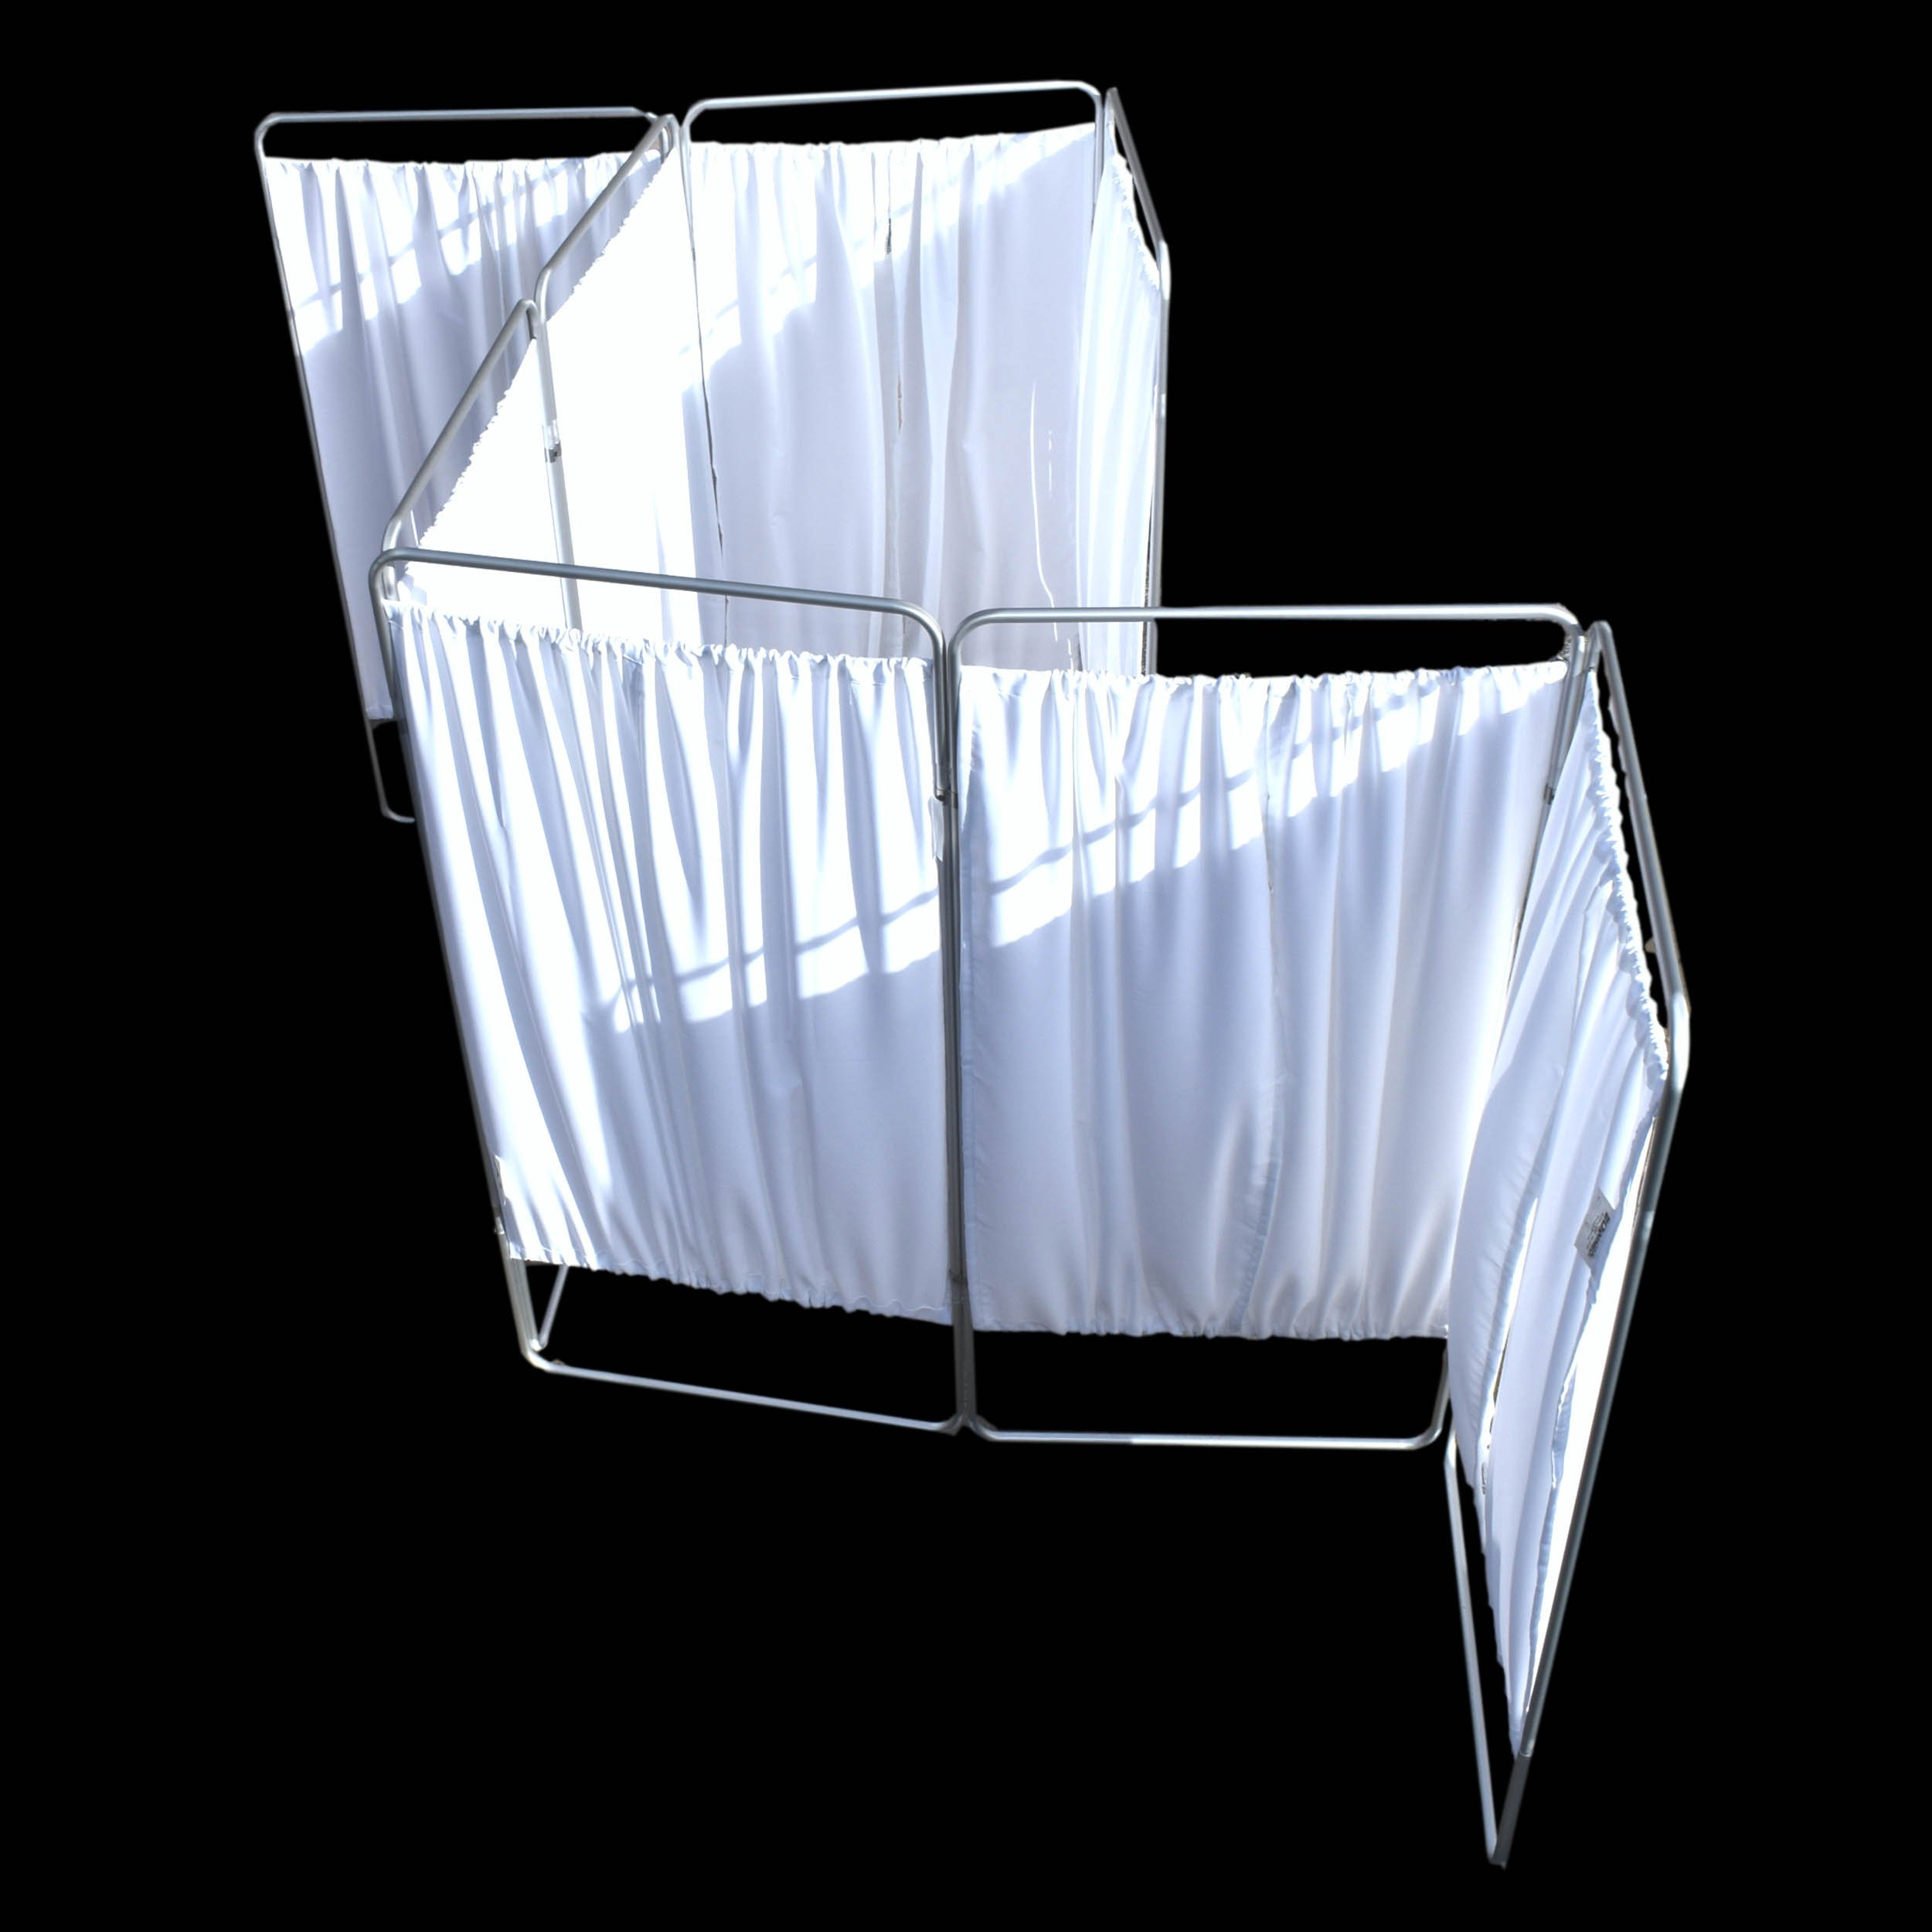 King Economy Privacy Screen with T-Hinge and White Vinyl Panel - 8 Section